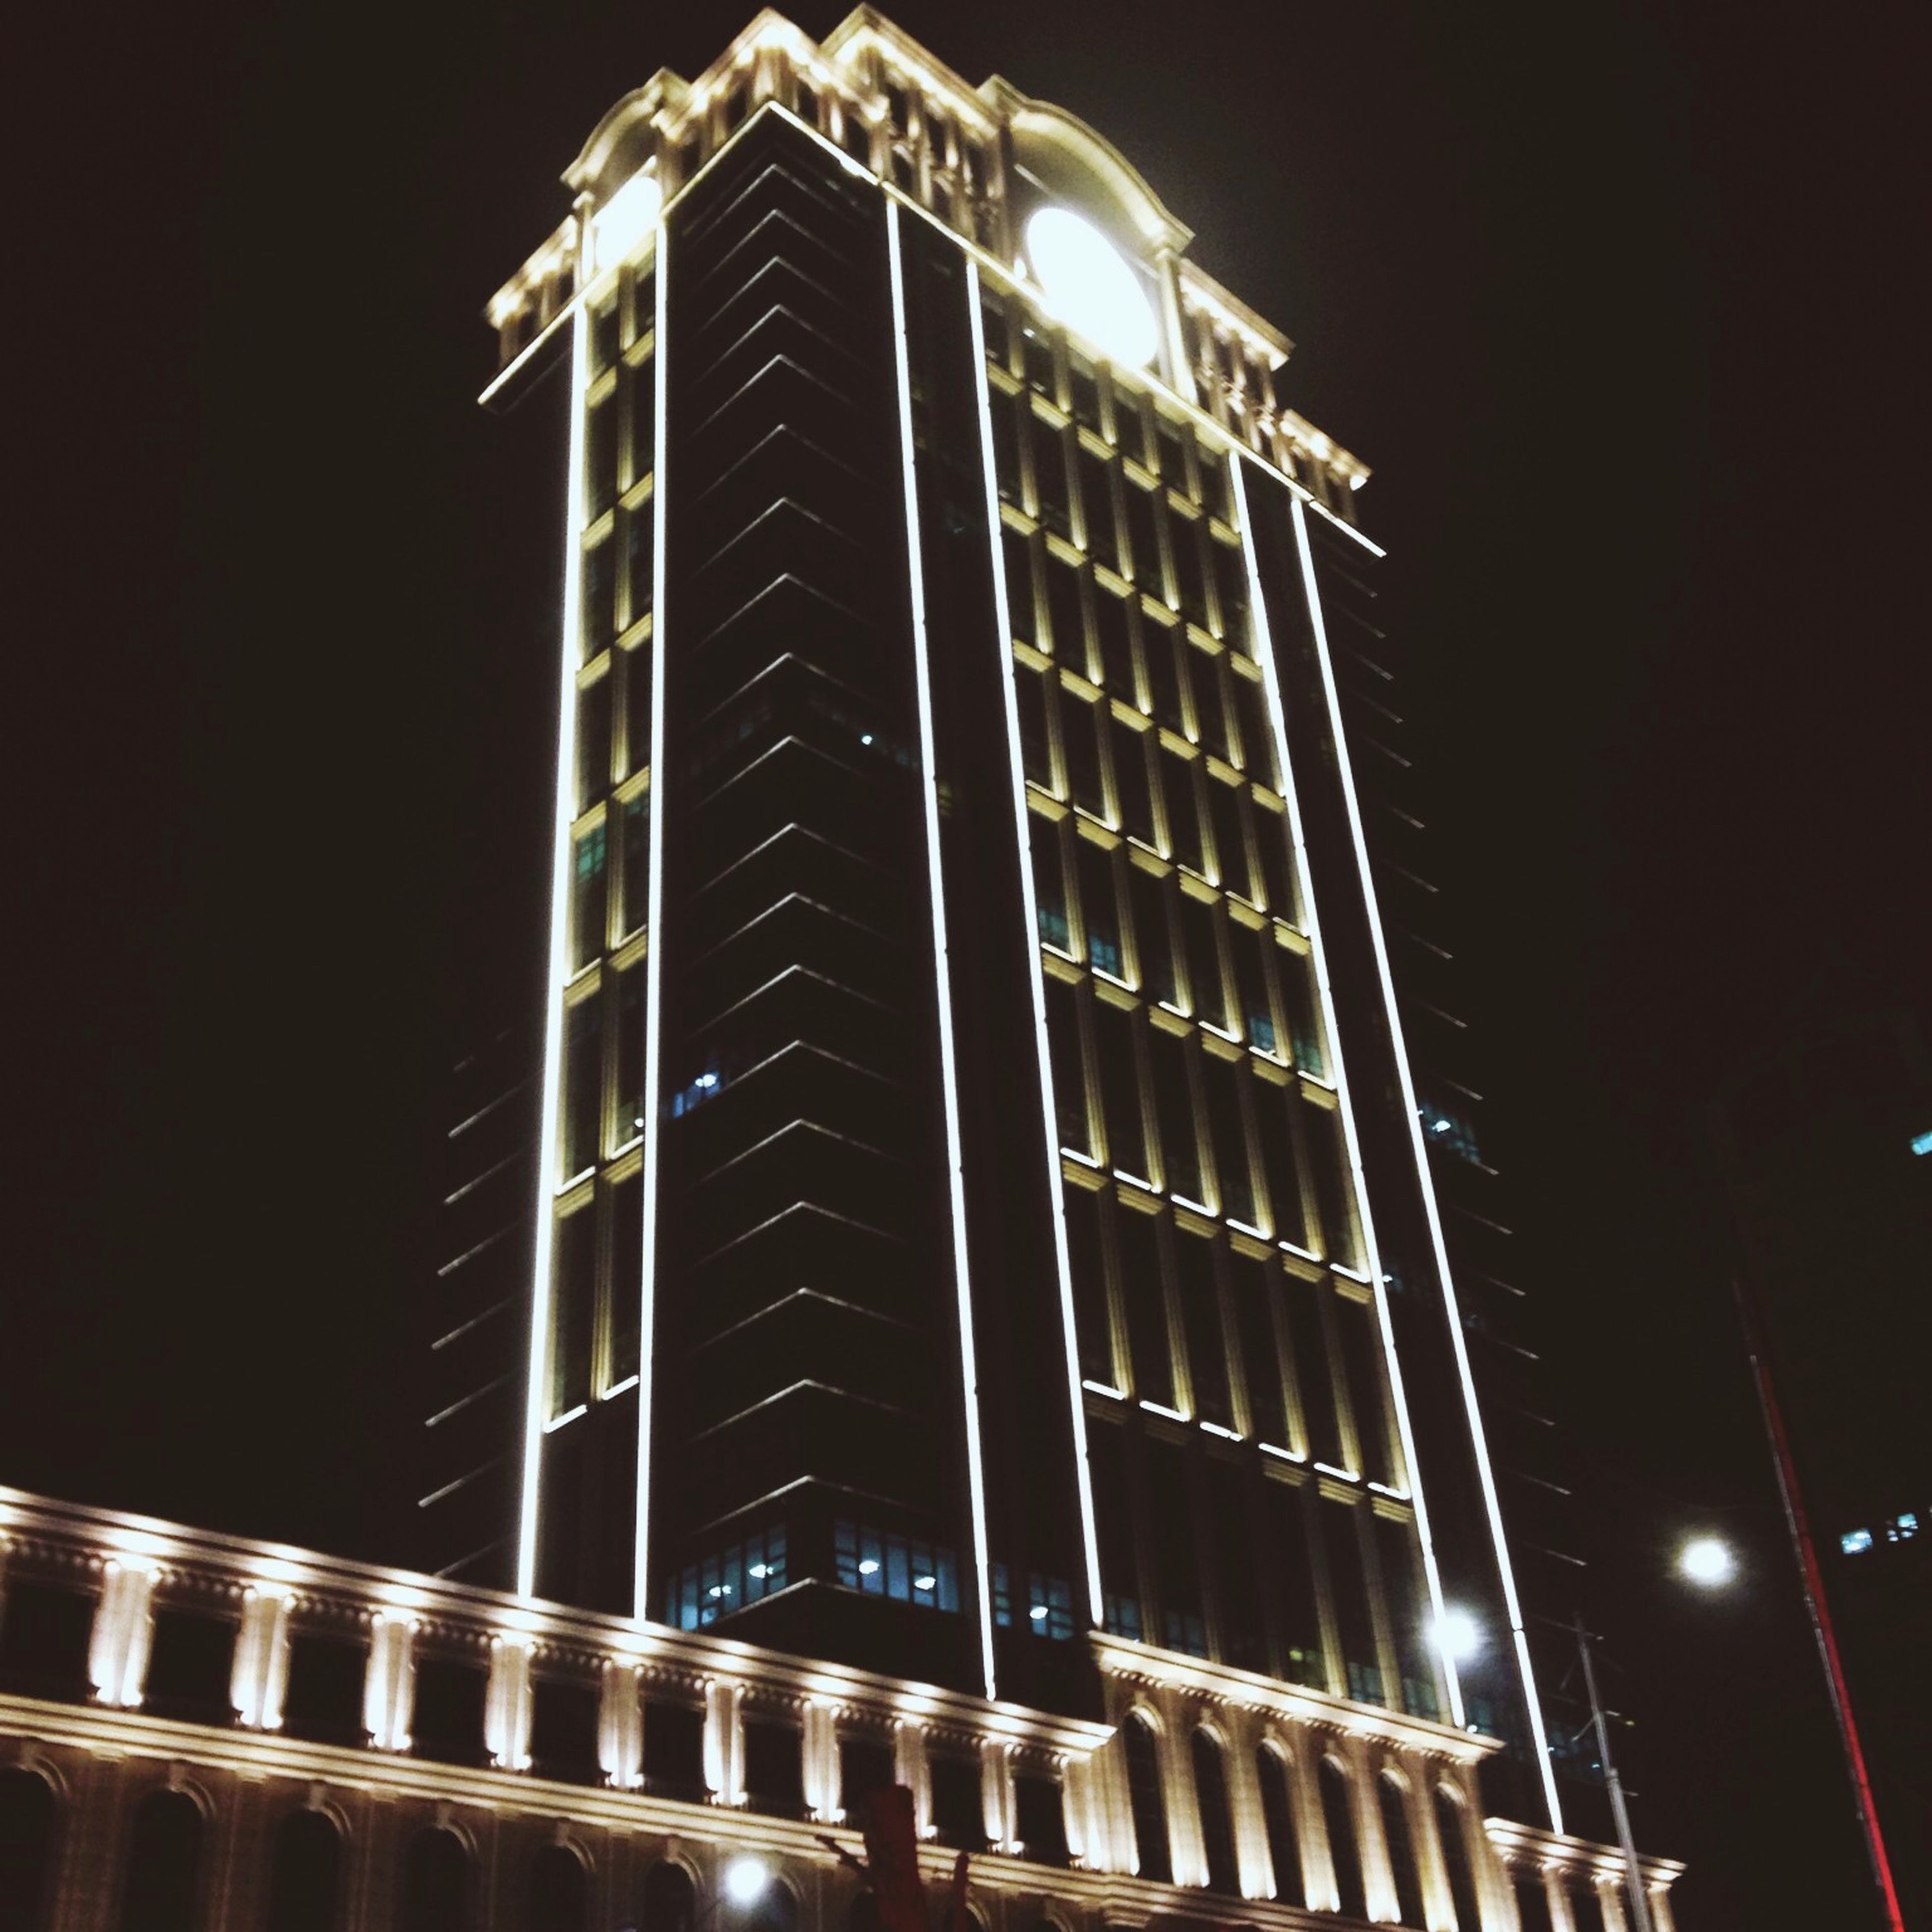 night, illuminated, low angle view, architecture, built structure, building exterior, building, city, clear sky, lighting equipment, dark, sky, tall - high, tower, street light, modern, skyscraper, no people, outdoors, light - natural phenomenon